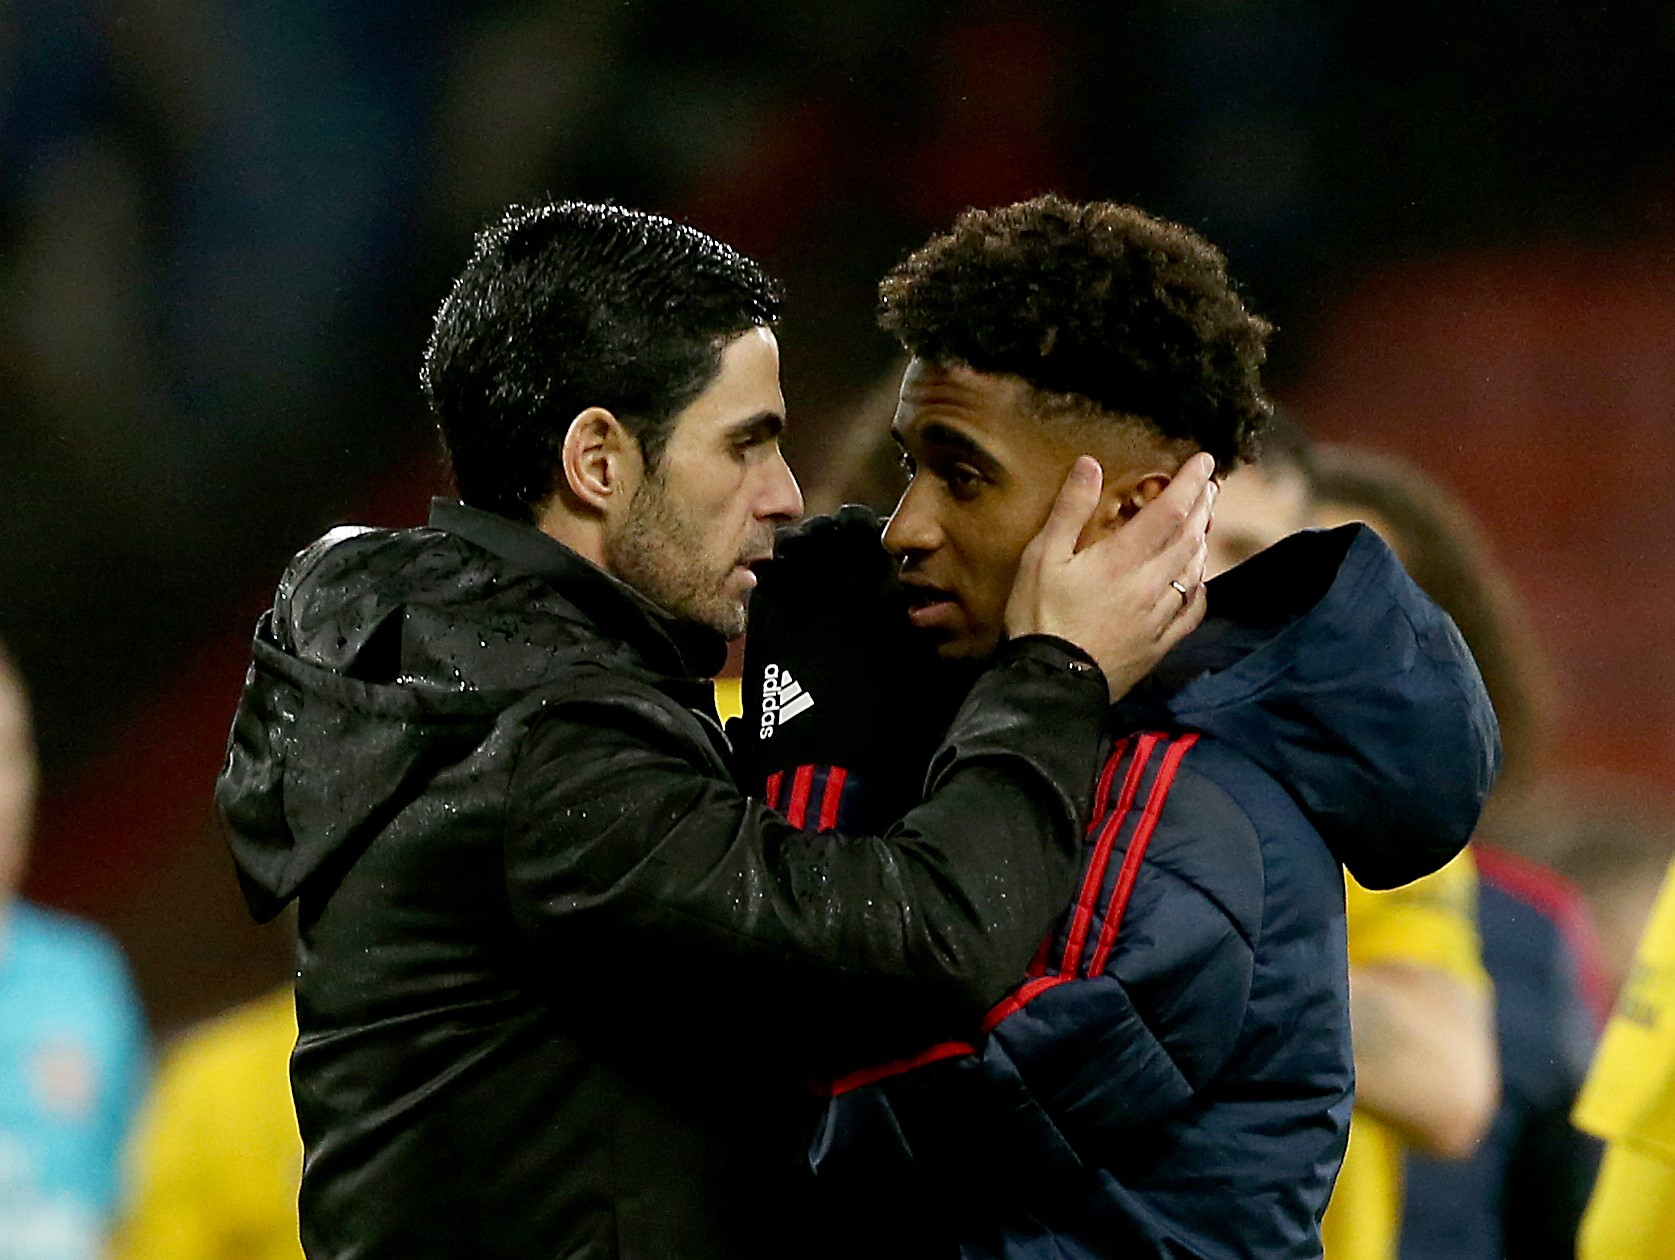 Arteta (left) has been impressed with Nelson's willingness to learn.